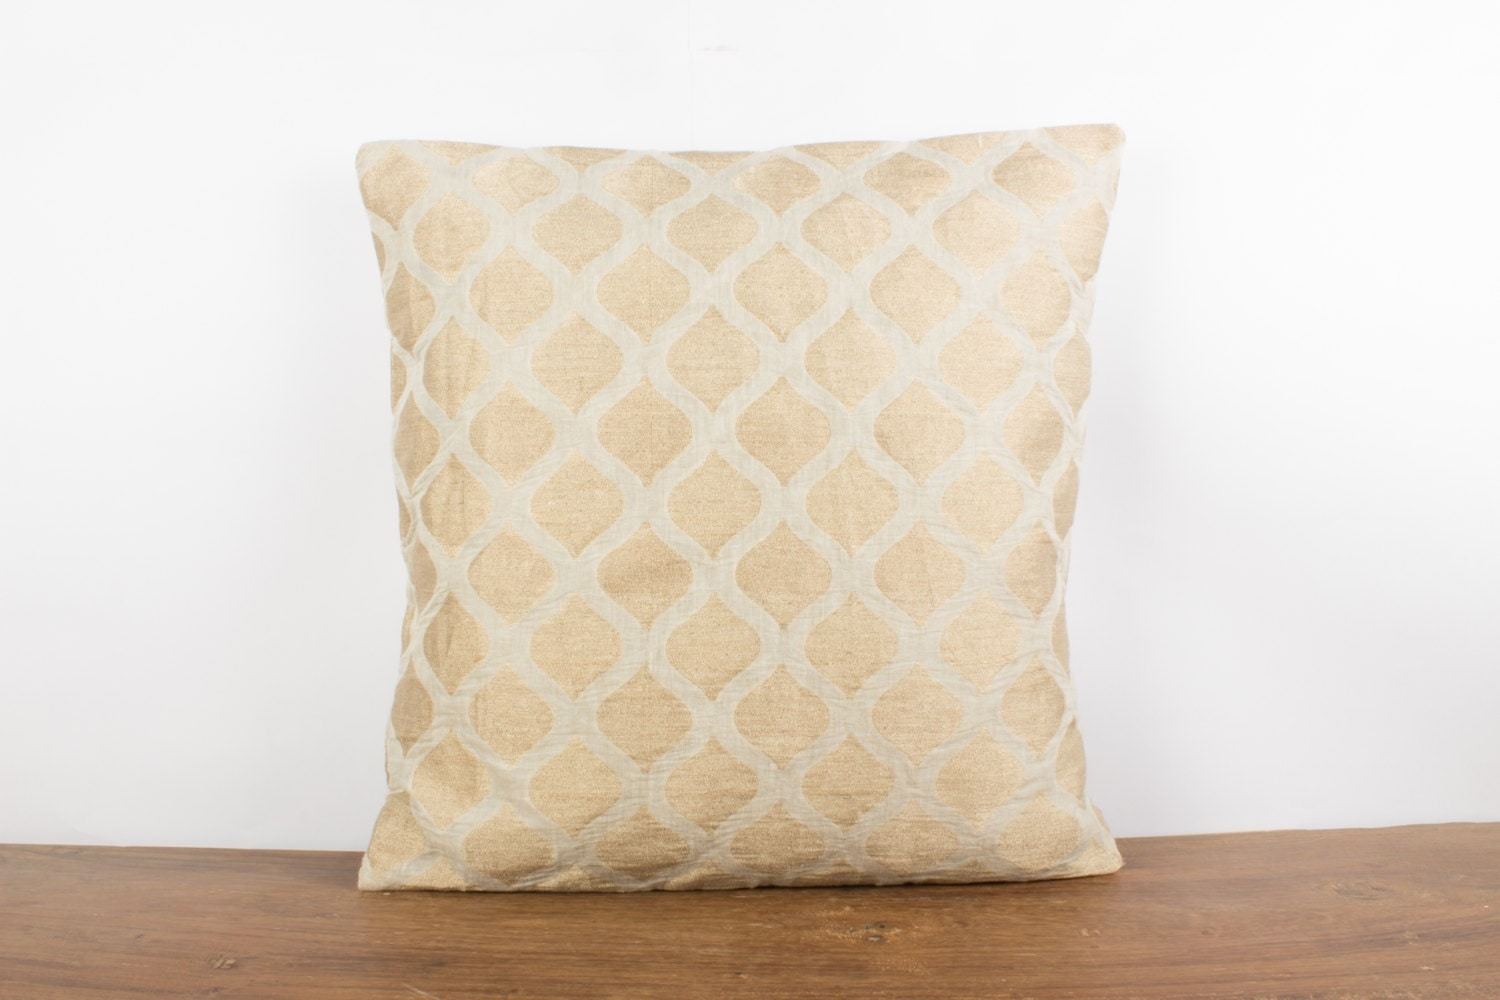 Throw Pillow Euro Sham : Dutch White Euro sham 26x26 Decorative throw Pillow by Fabricasia